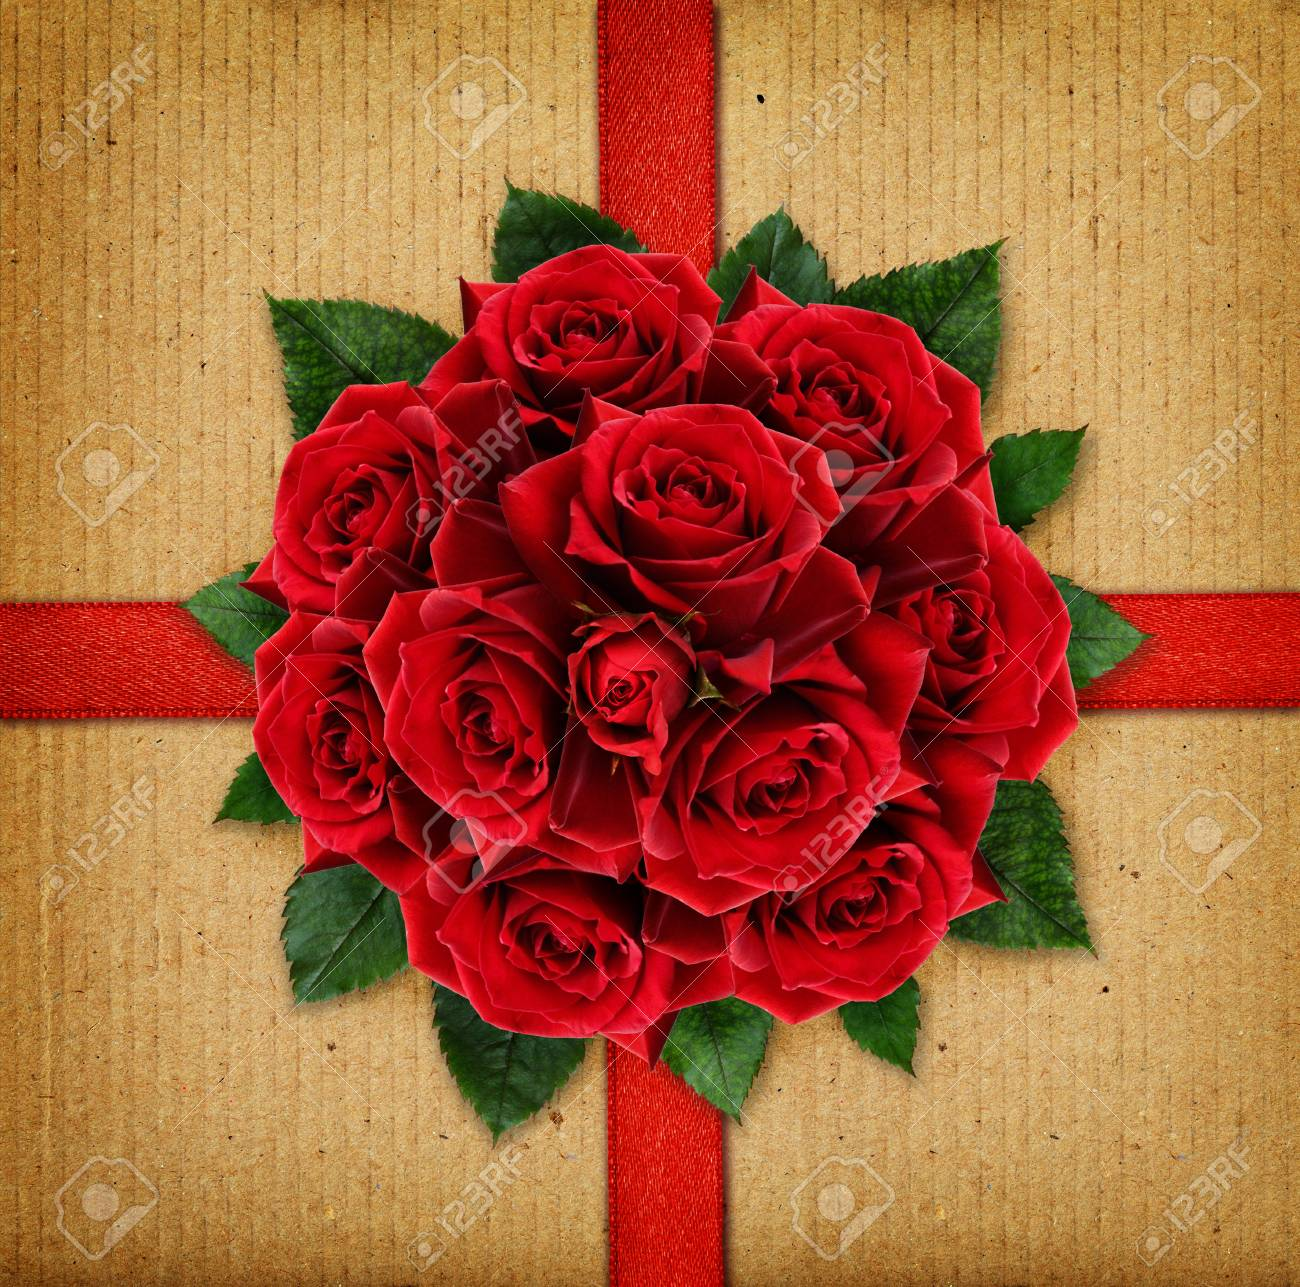 Red Rose Flowers Bouquet And A Ribbon On Cardboard Background Stock